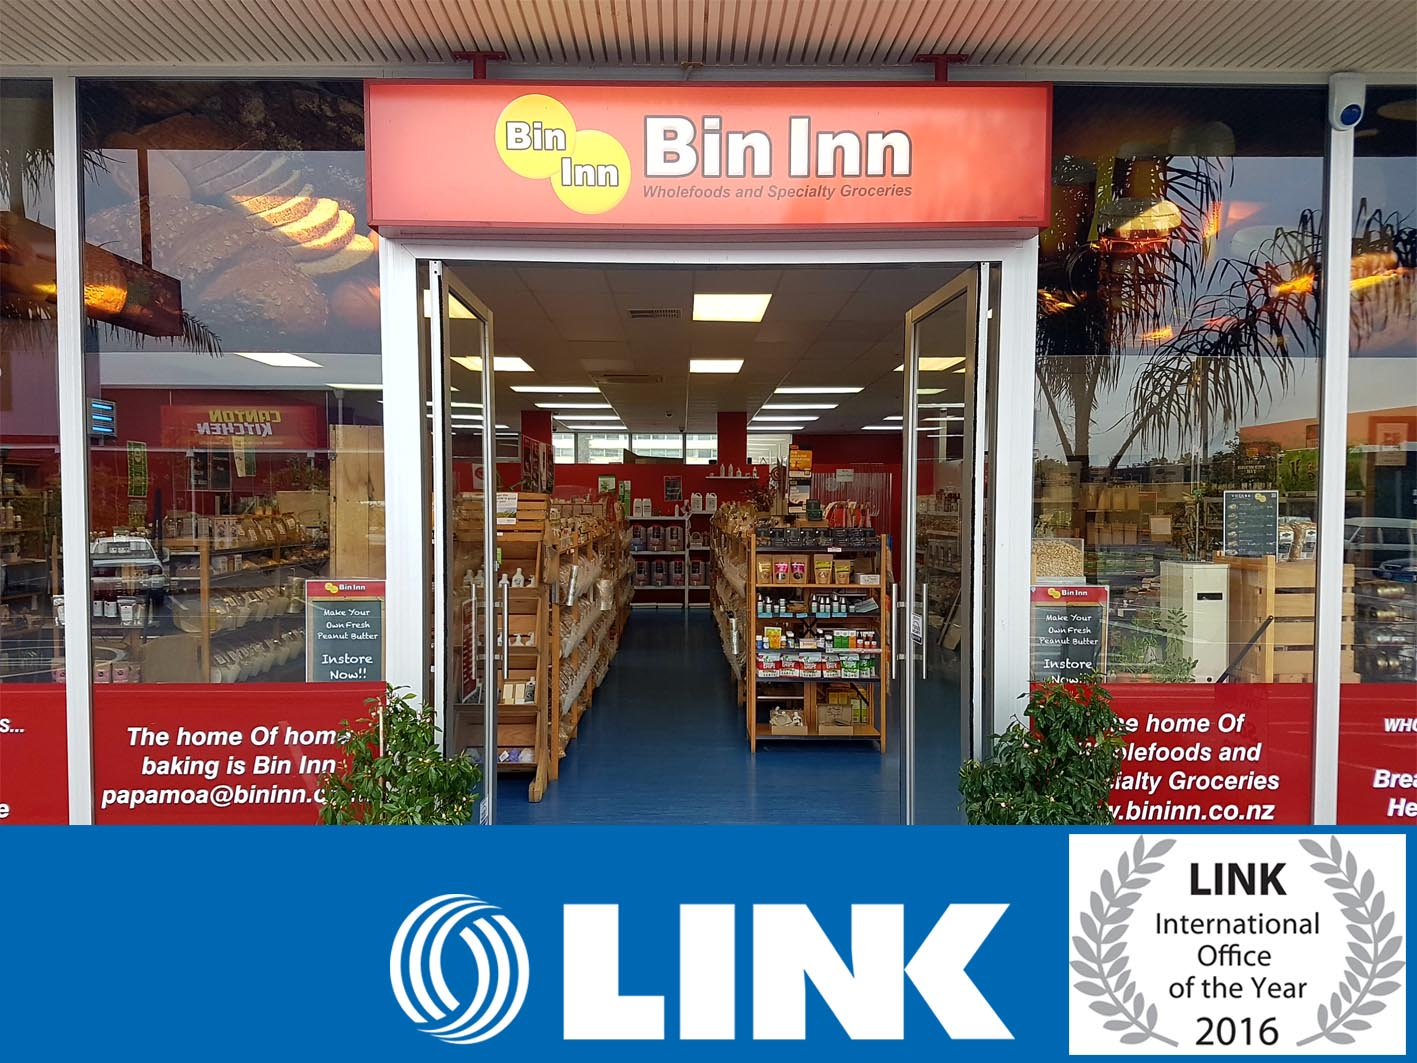 Bin Inn Specialty Food and Grocery Business for Sale Papamoa Tauranga